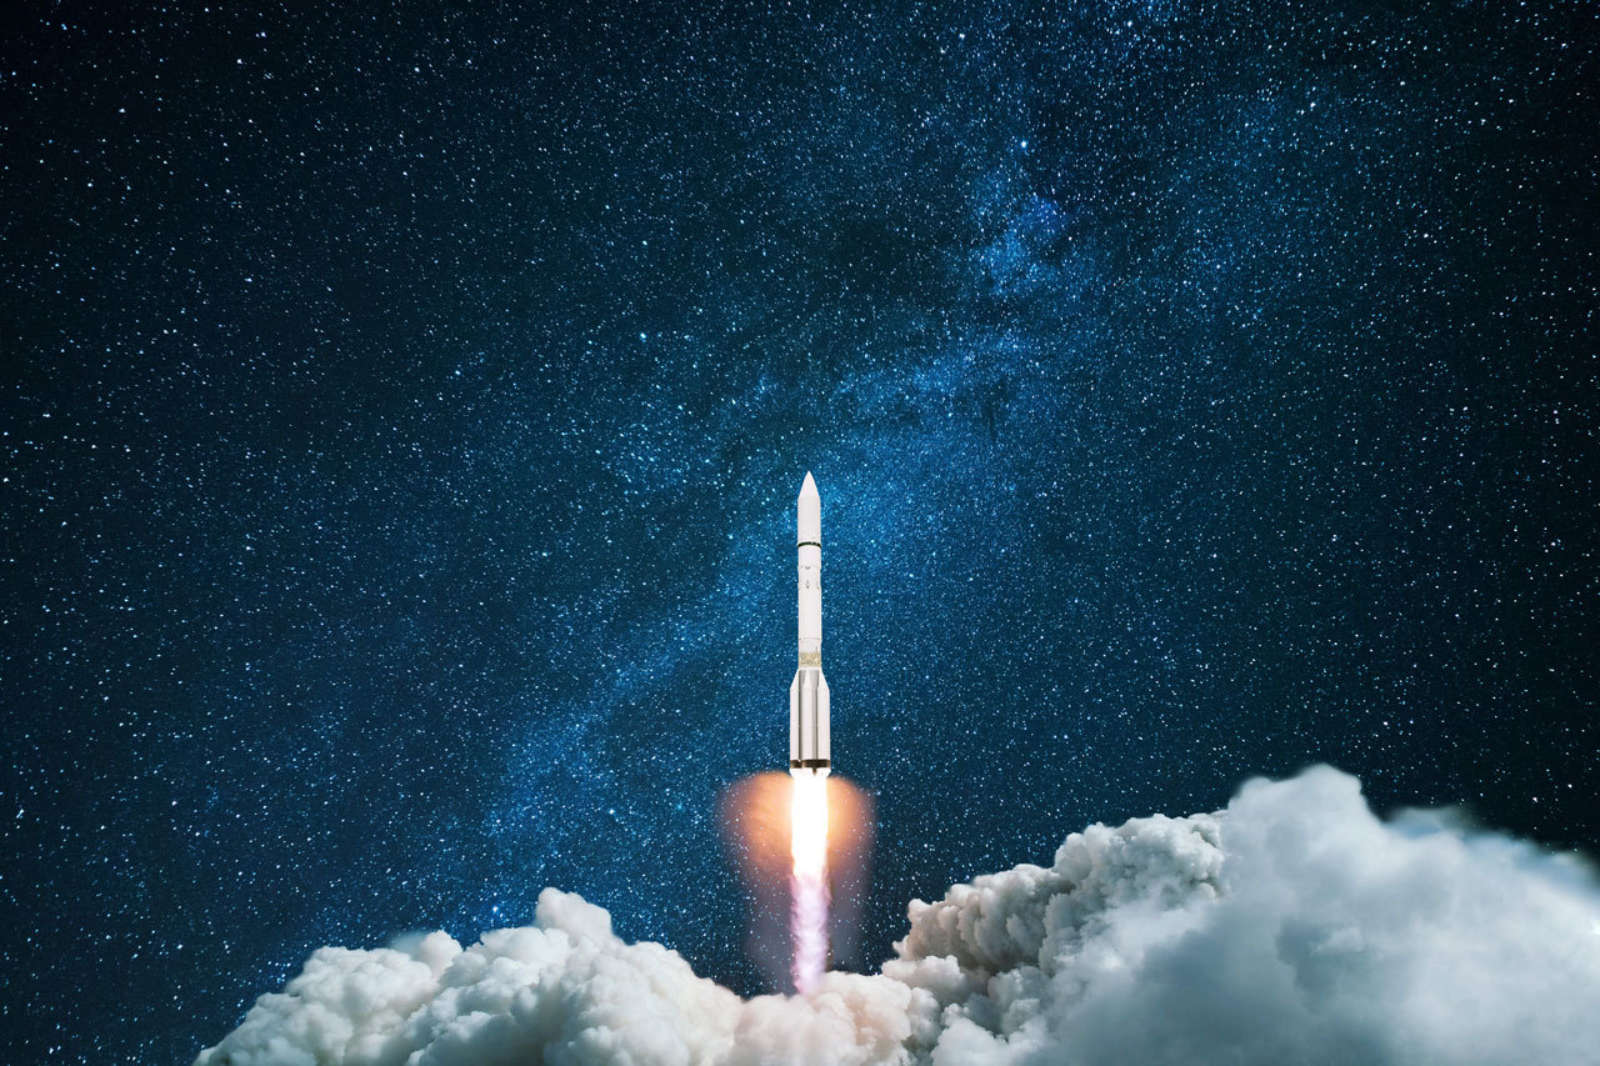 A rocketship launches into a star studded nightsky